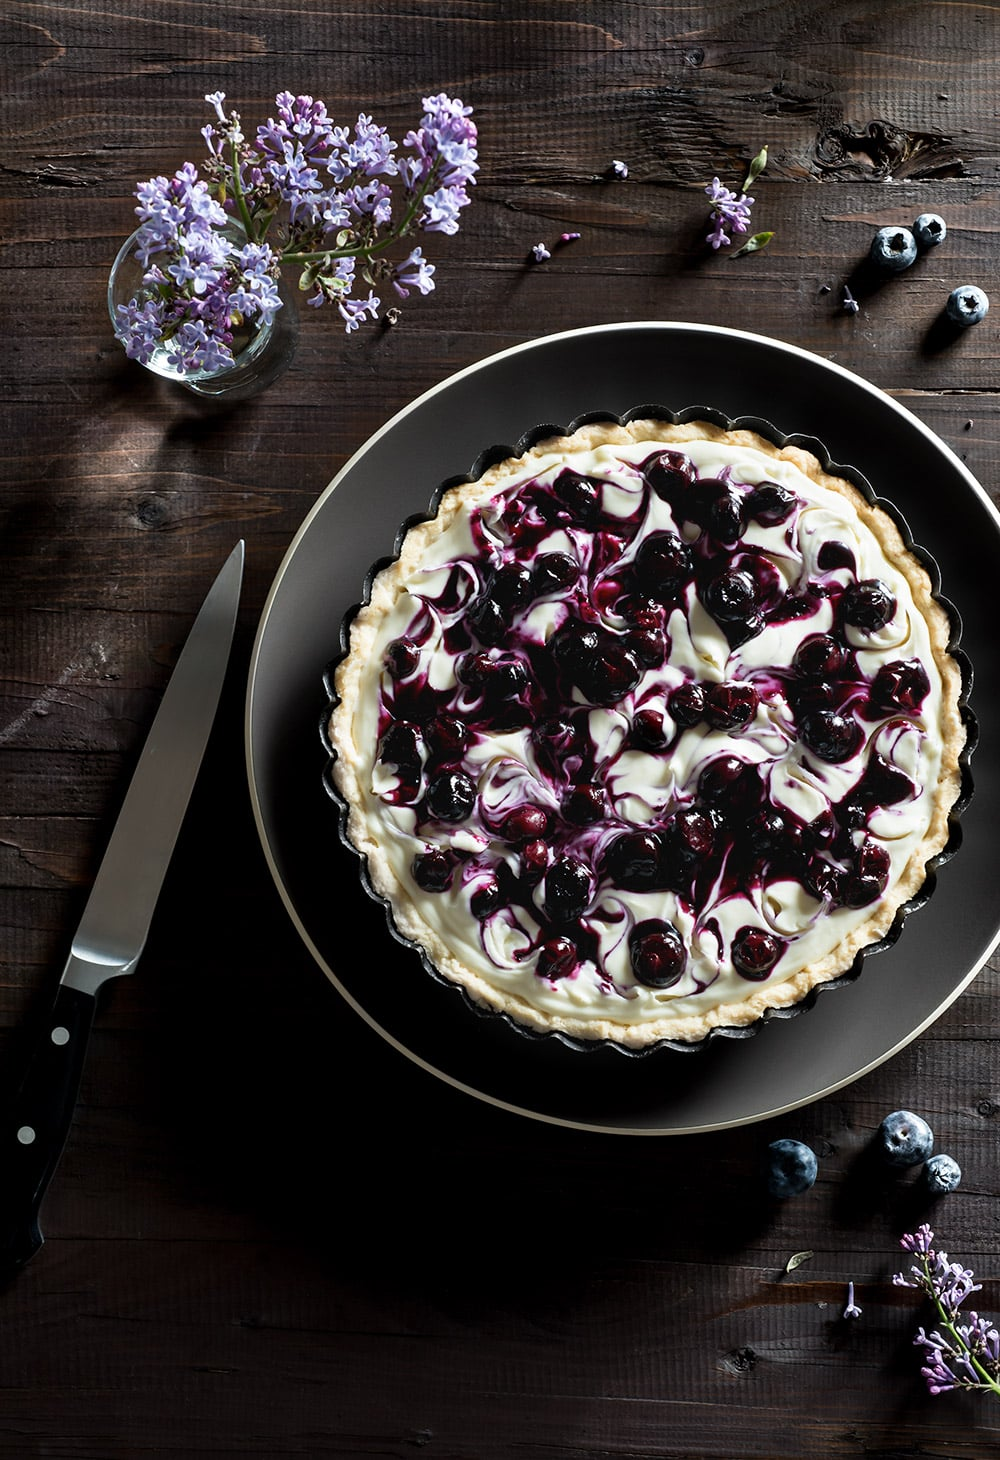 15 Recipes That Take New York Cheesecake to the Next Level: Blueberry Ginger Swirl Cheesecake with Creme de Cassis and White Chocolate